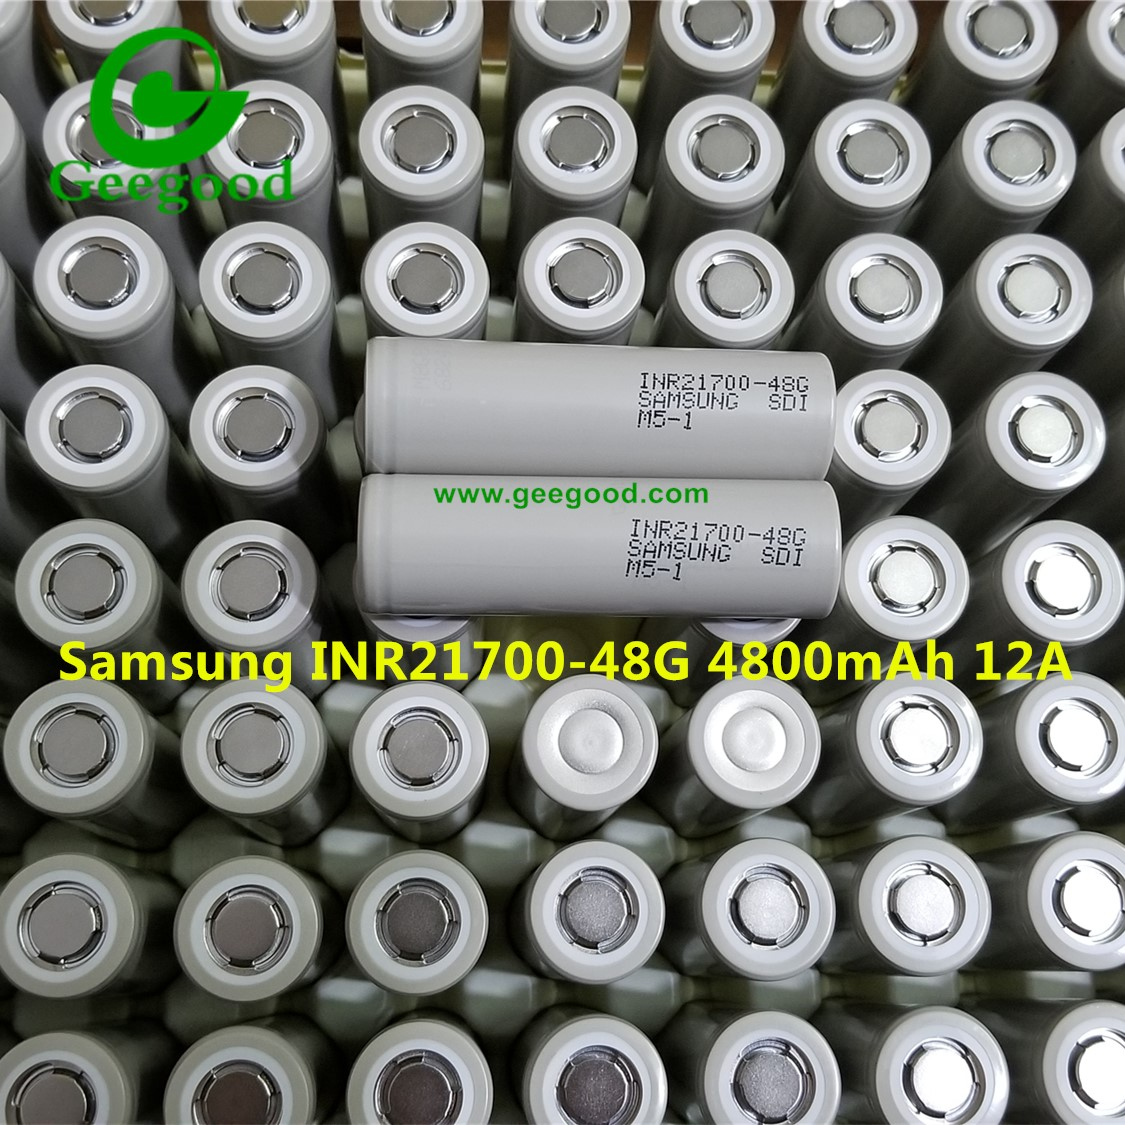 New Samsung 21700 battery INR21700-48G 4800mAh 12A